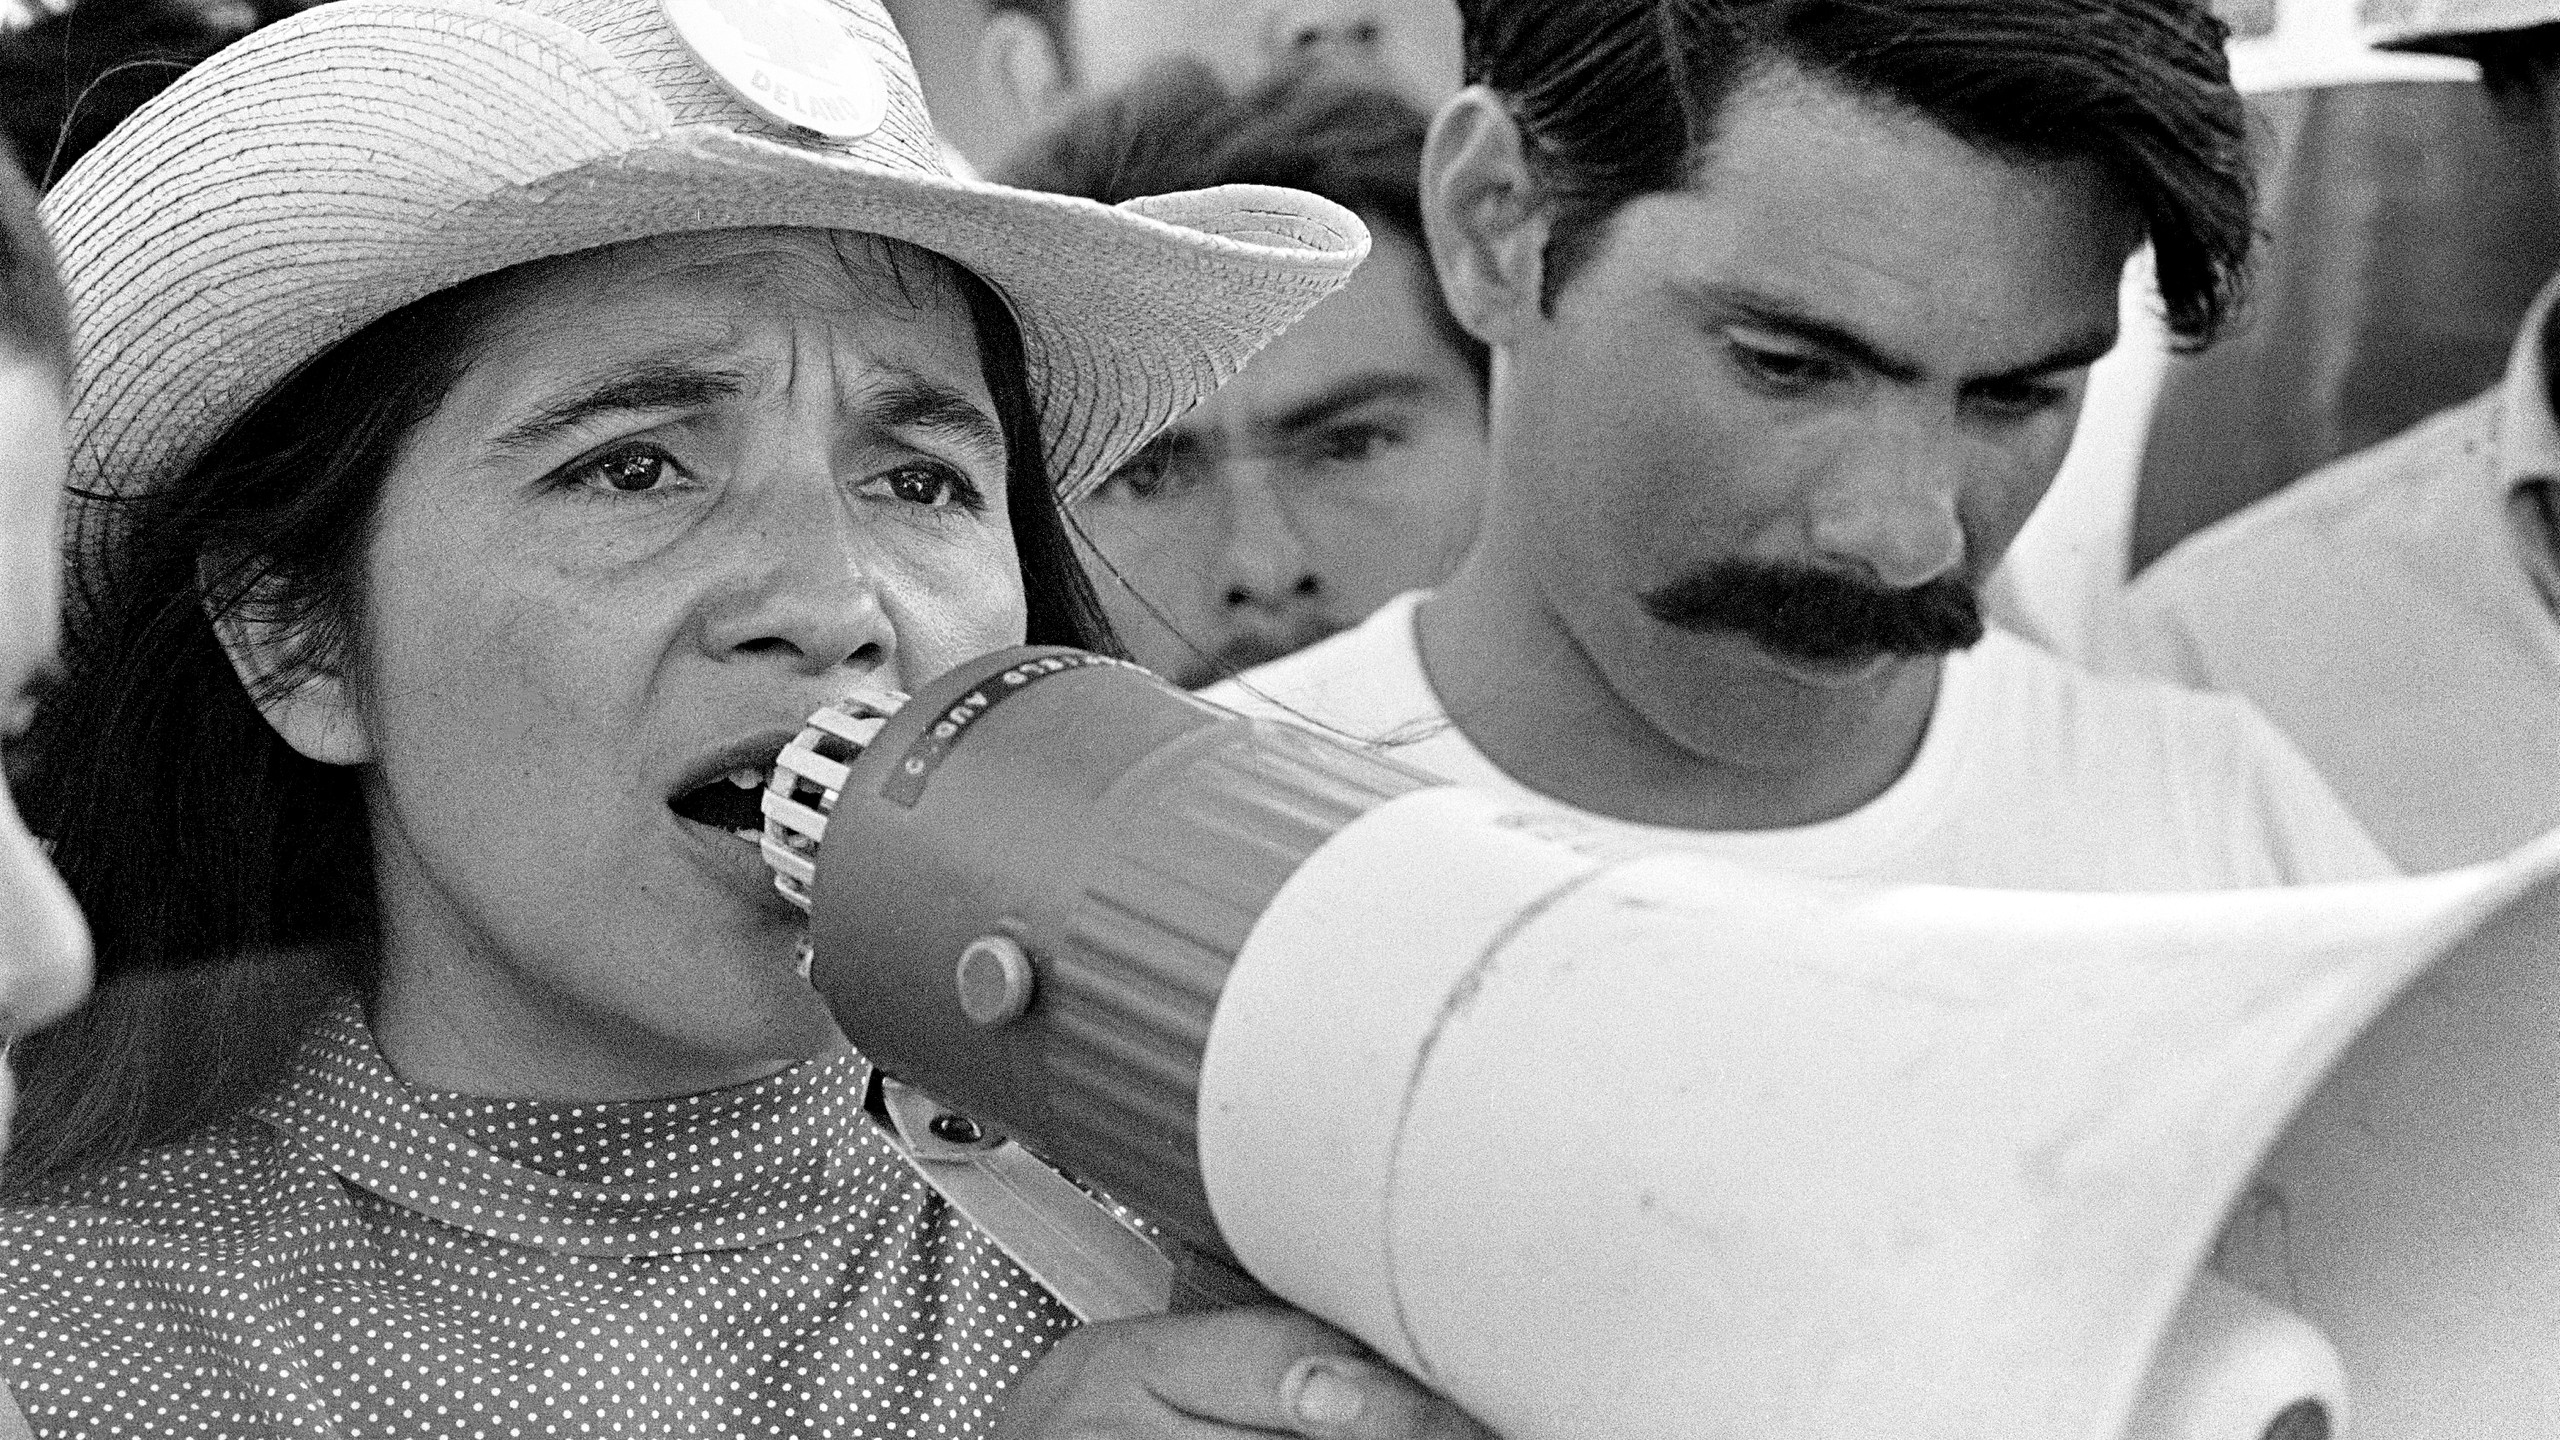 #1_-_United_Farm_Workers_leader_Dolores_Huerta_organizing_marchers_on_the_2nd_day_of_March_Coachella_in_Coachella,_CA_1969._©_1